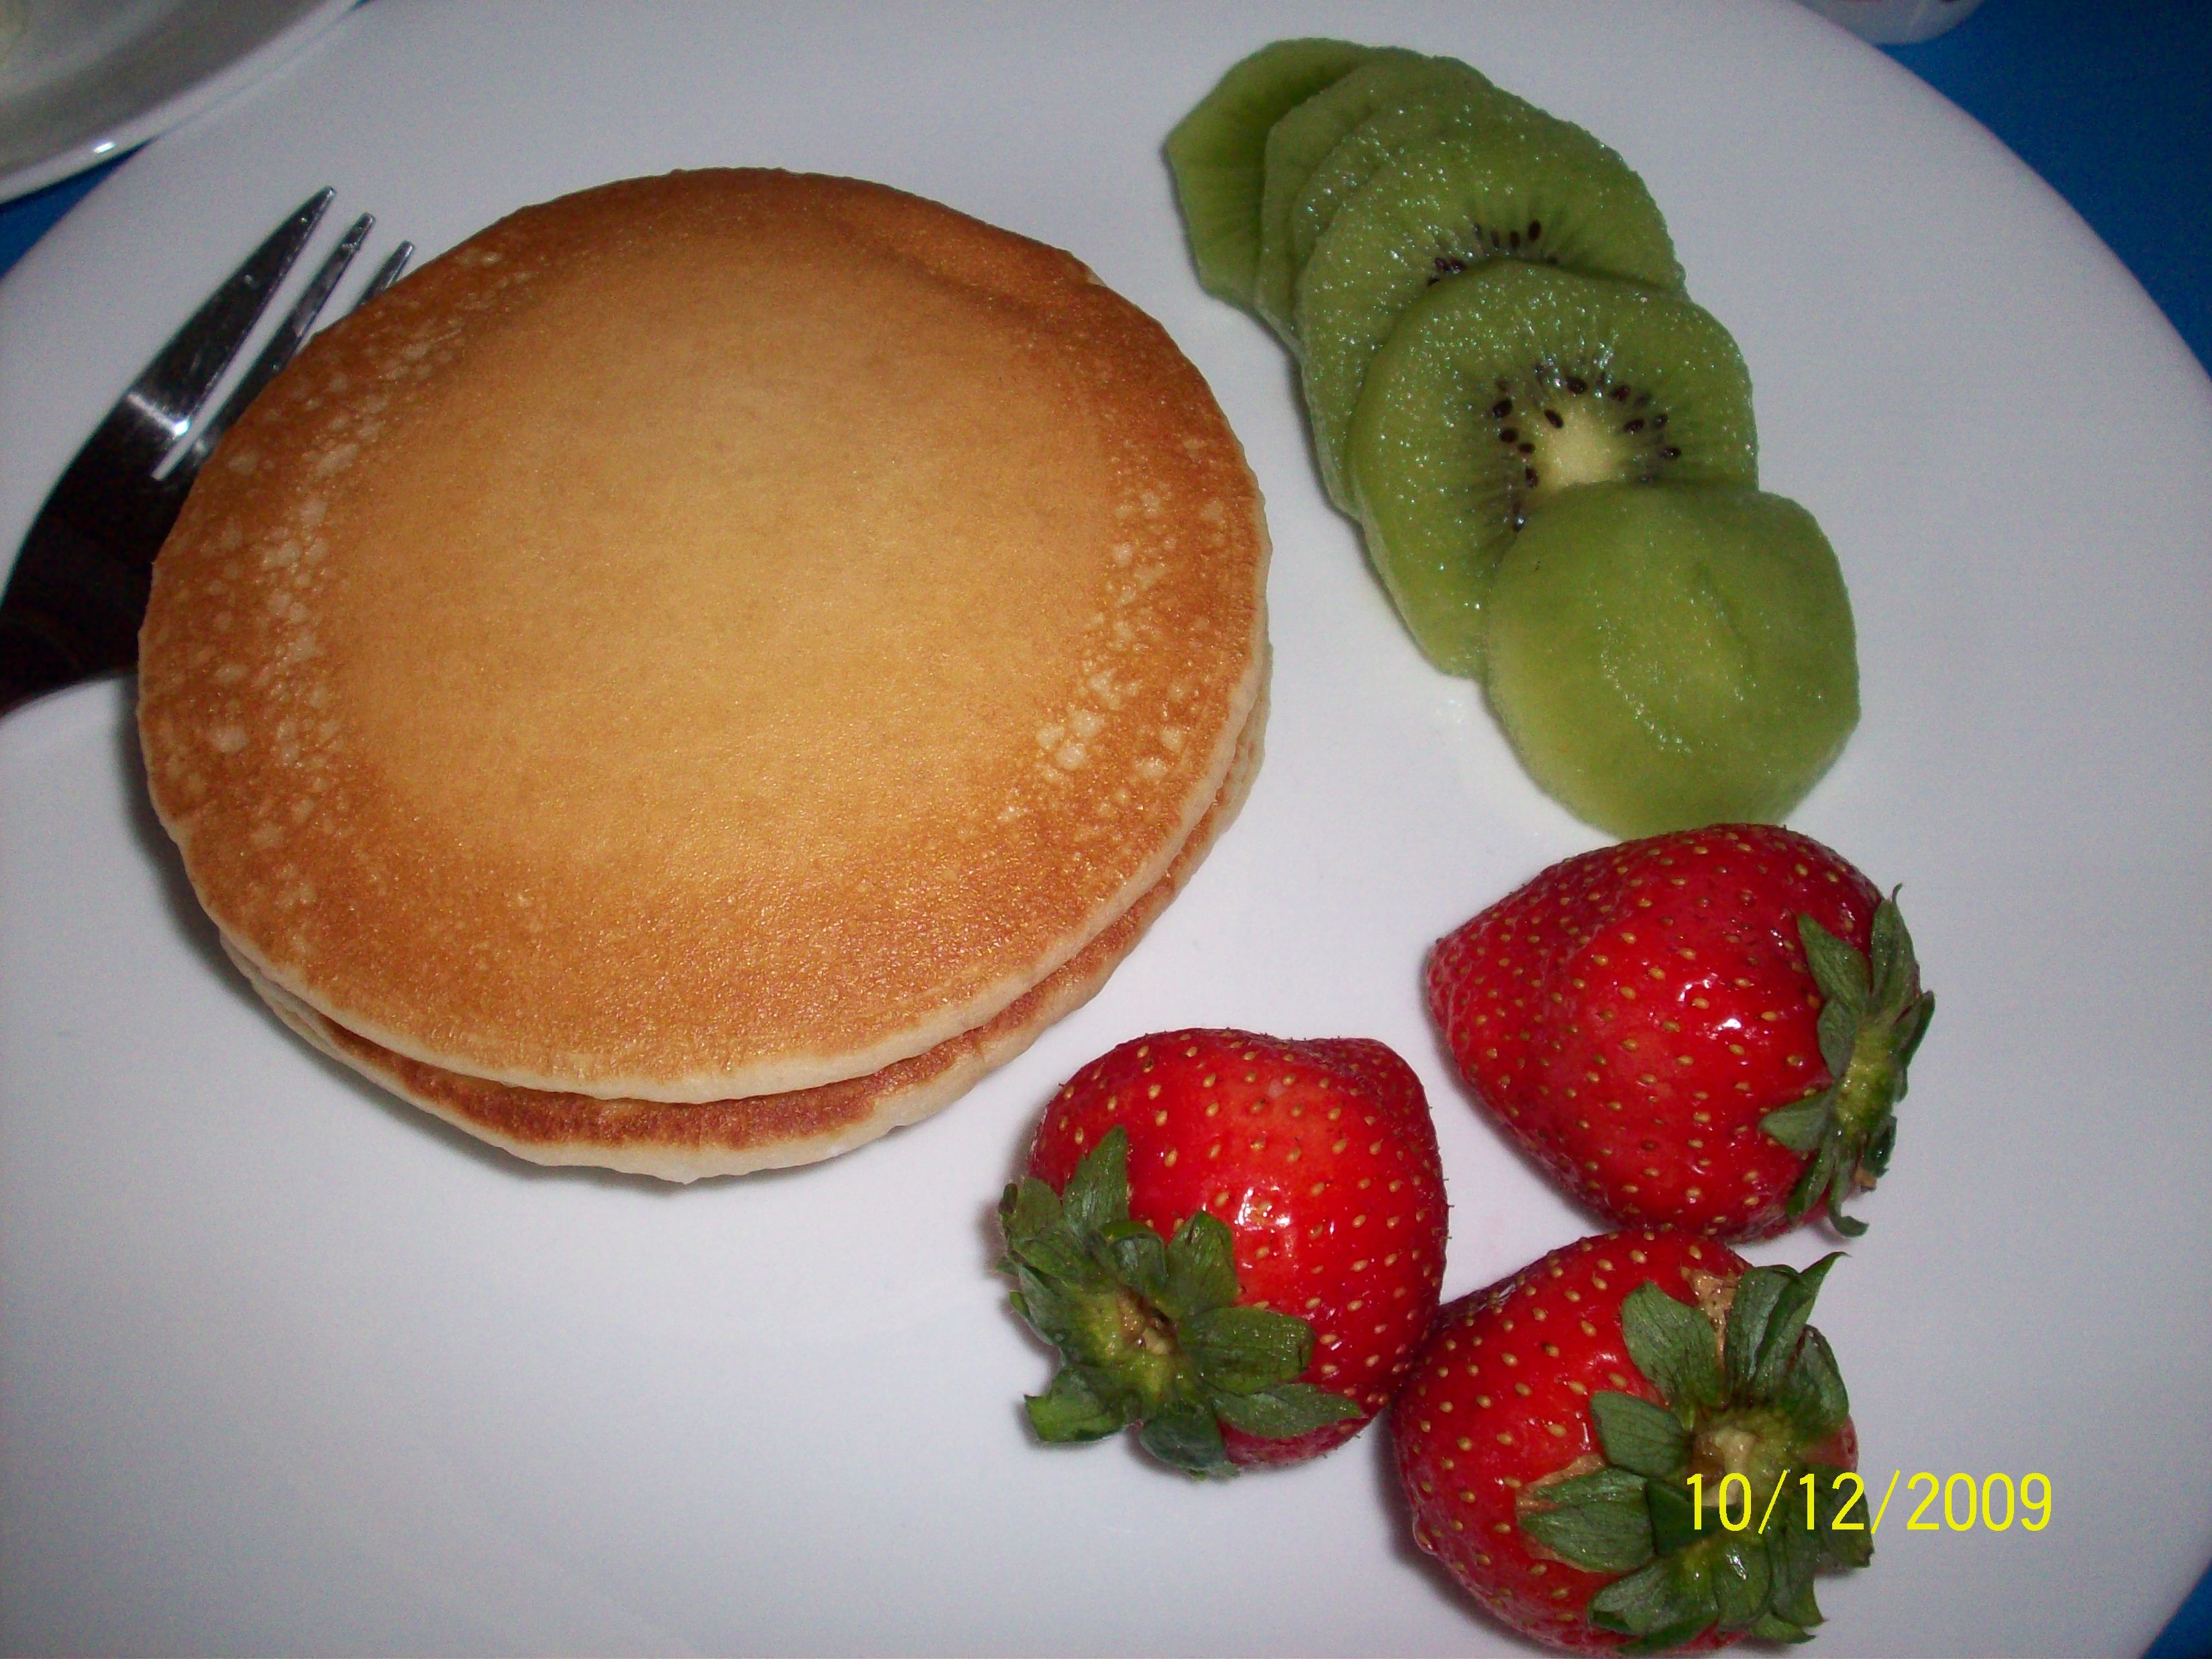 cutie • 2009-12-10 • Pancakes, Strawberries and Kiwi